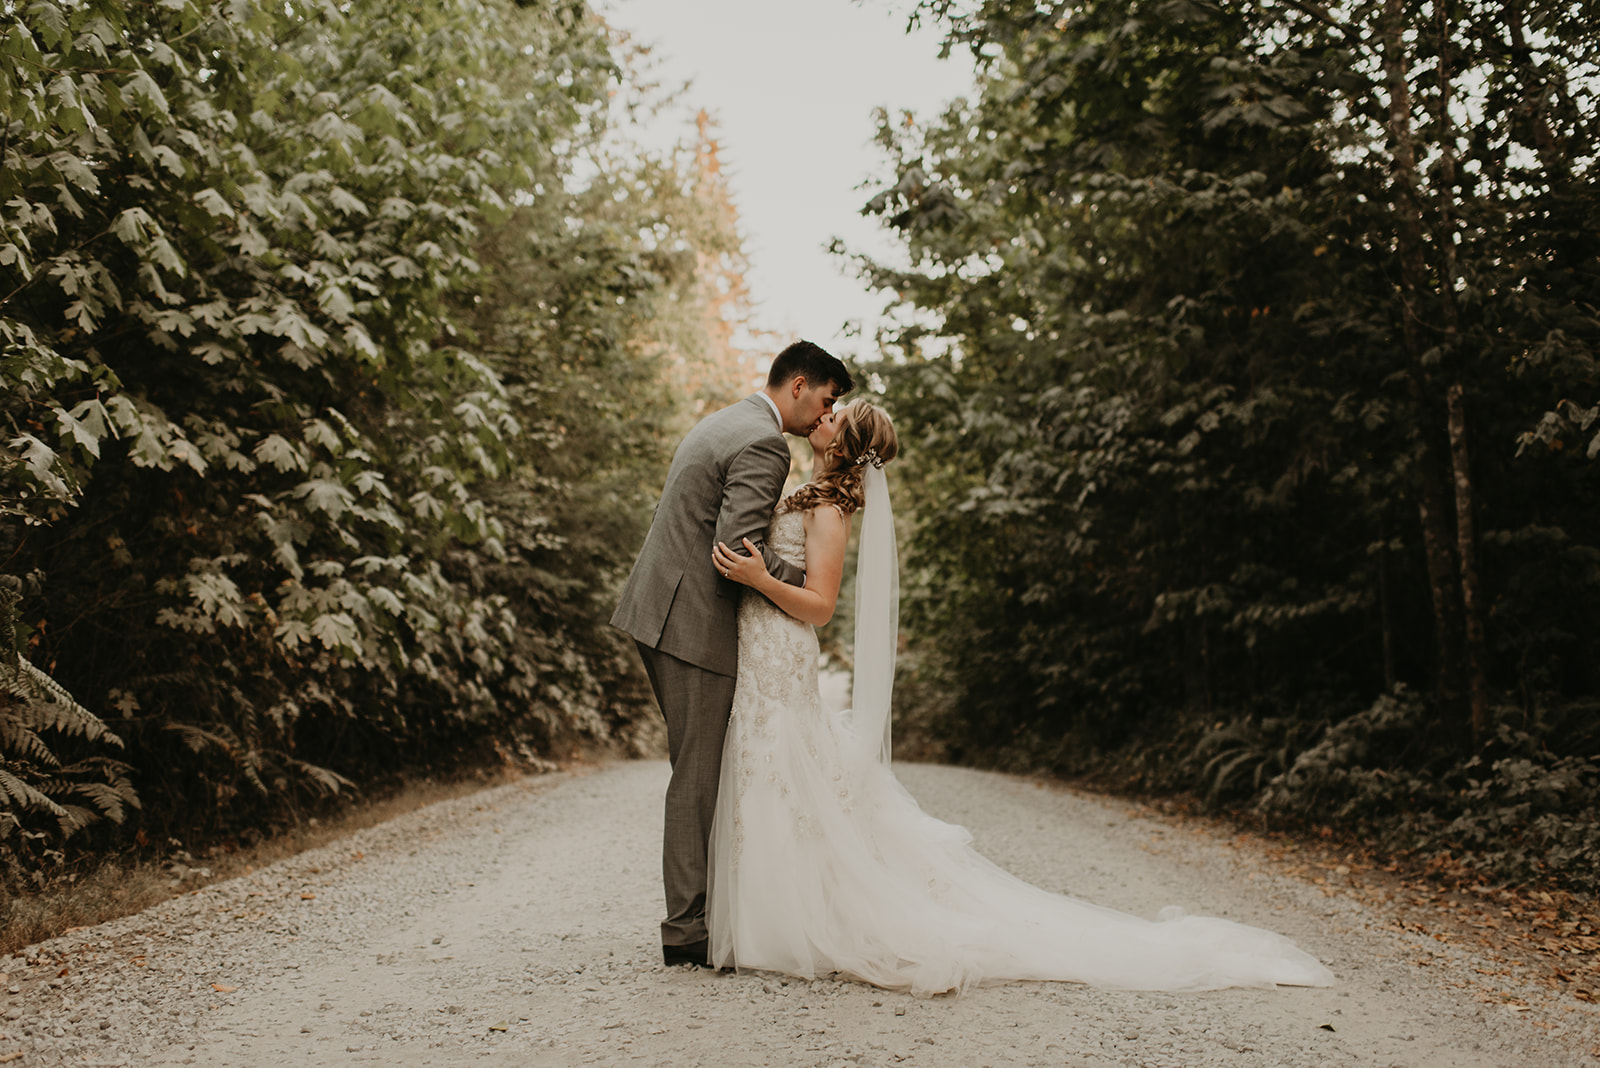 The Final Countdown / $2000 - Are you a hands-on bride? We help you assemble your vision and are available to answer questions along the way. You hand over reins the month before the wedding. We wrap up the final details to organize and execute your big day.